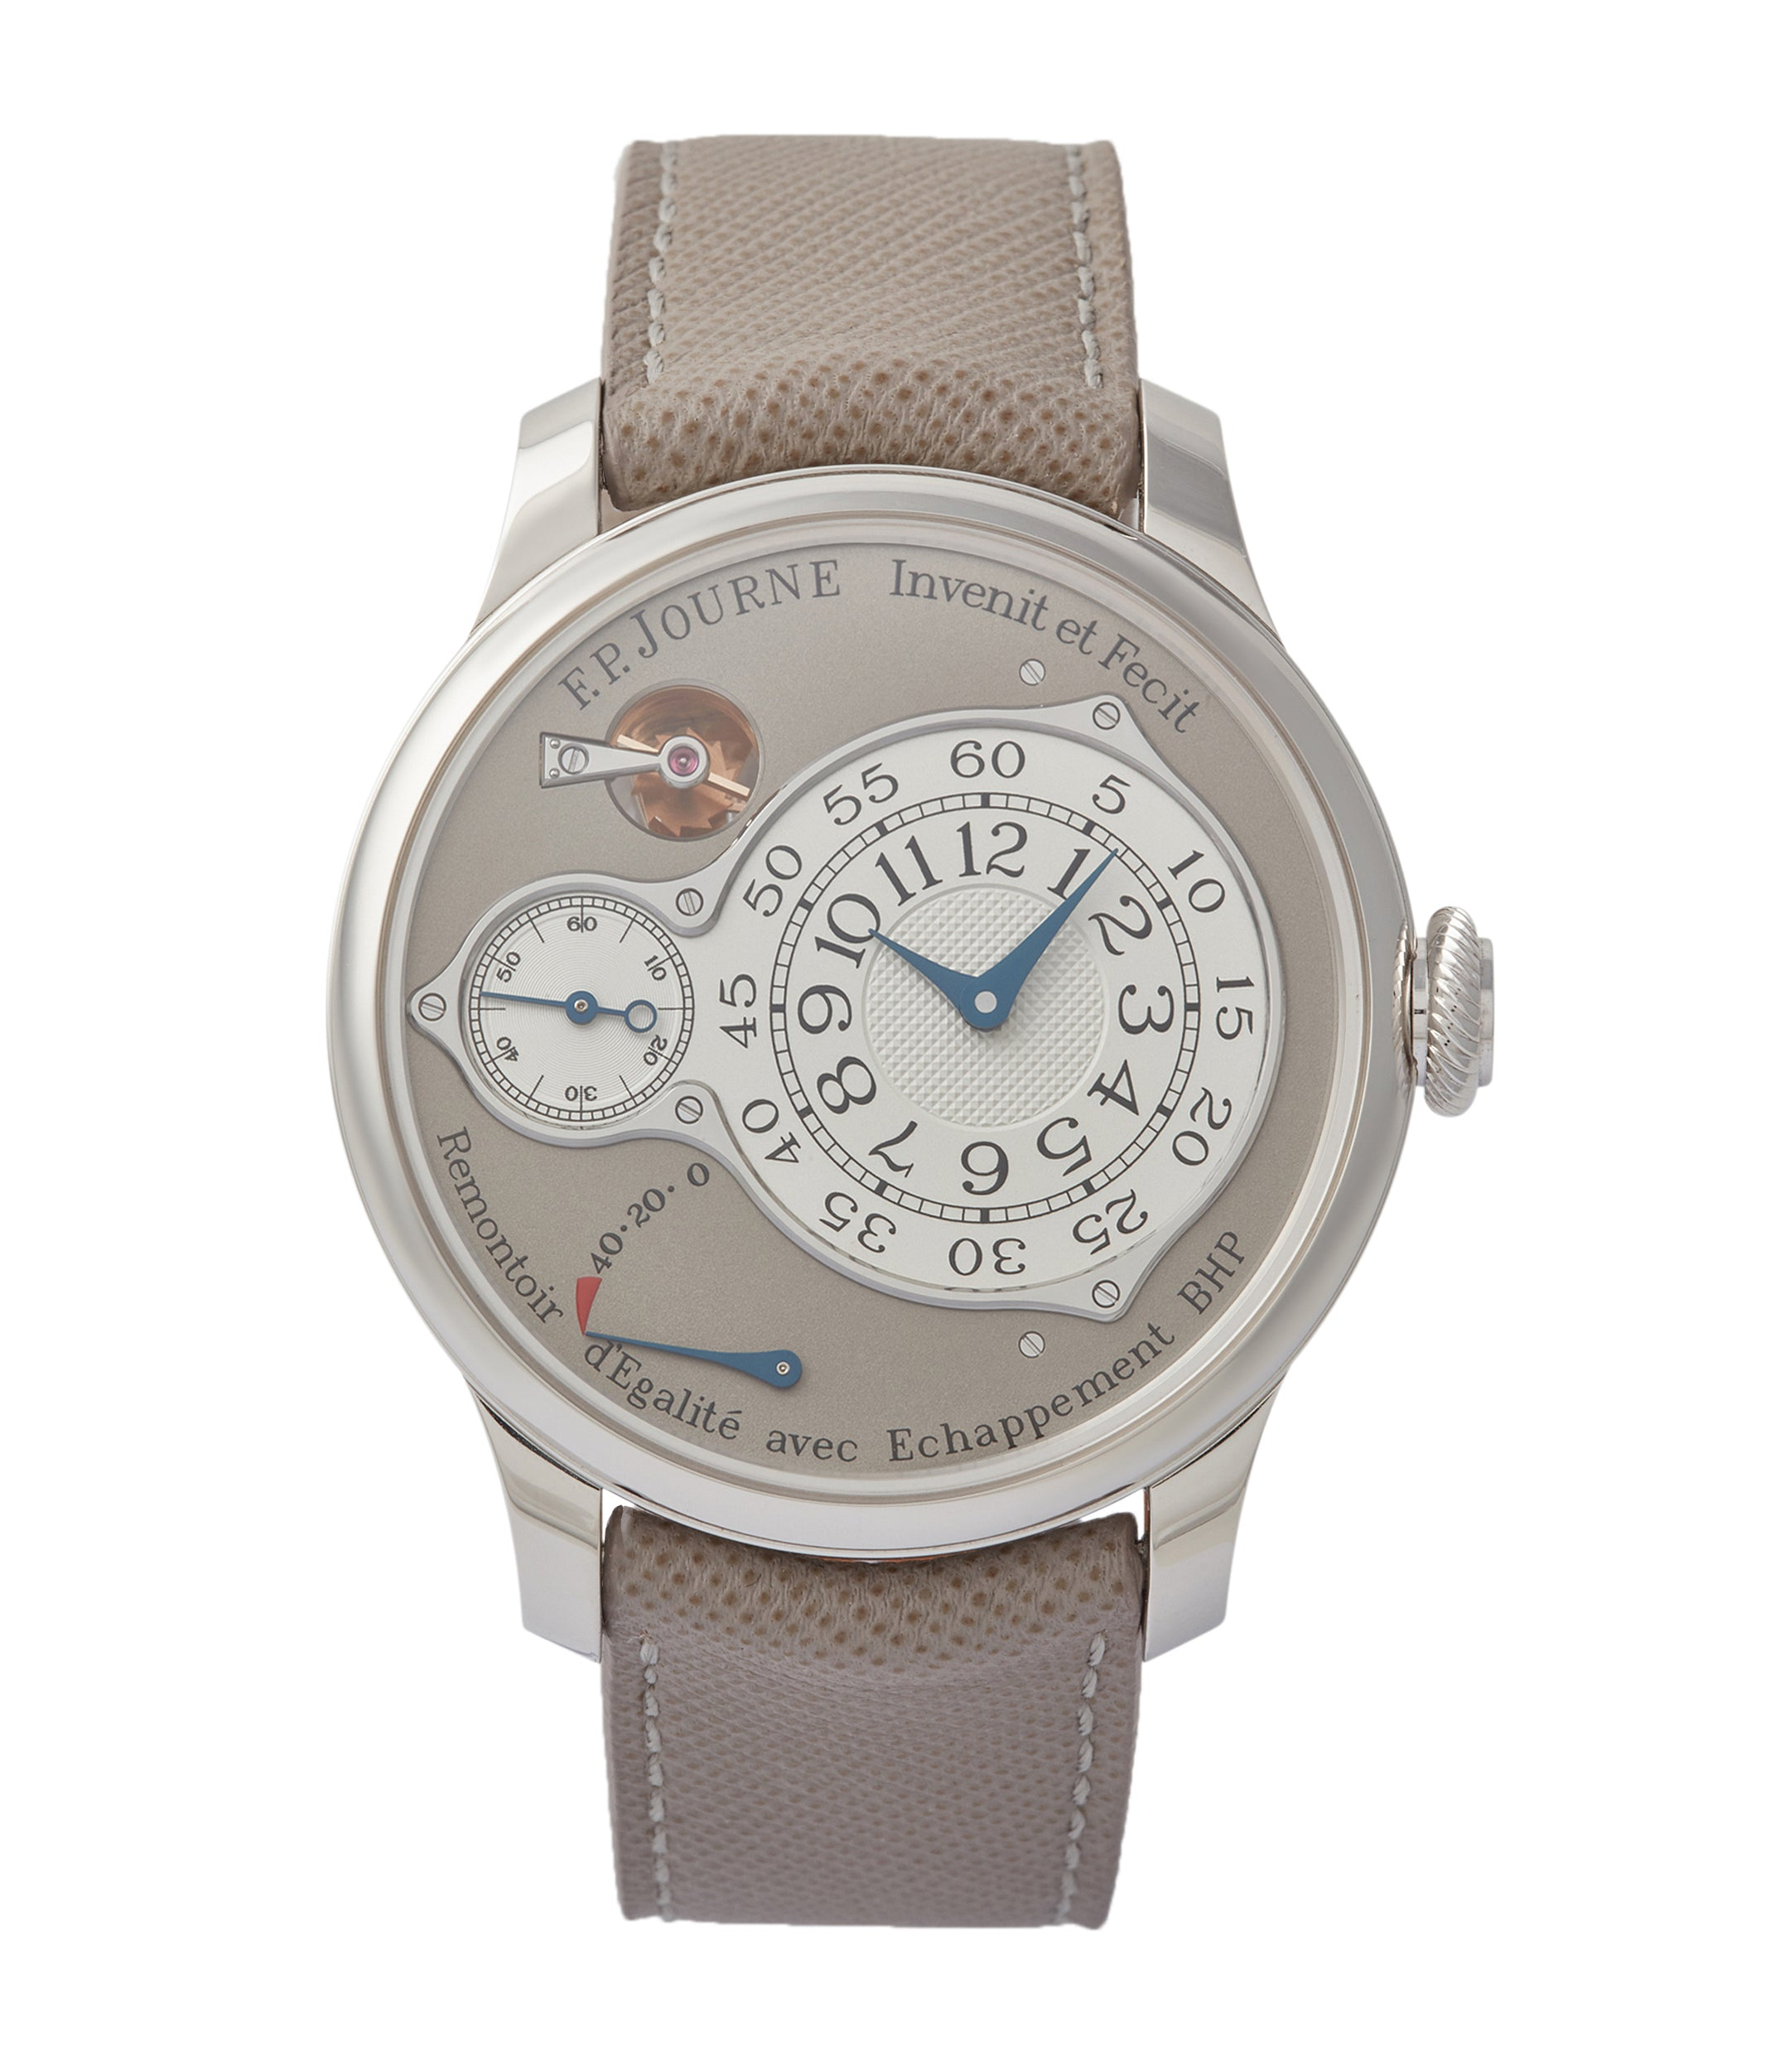 independent watchmaker Fracois Paul Journe Chronometre Optimum 40mm platinum pre-owned dress watch for sale at A Collected Man London selling independent watchmakers